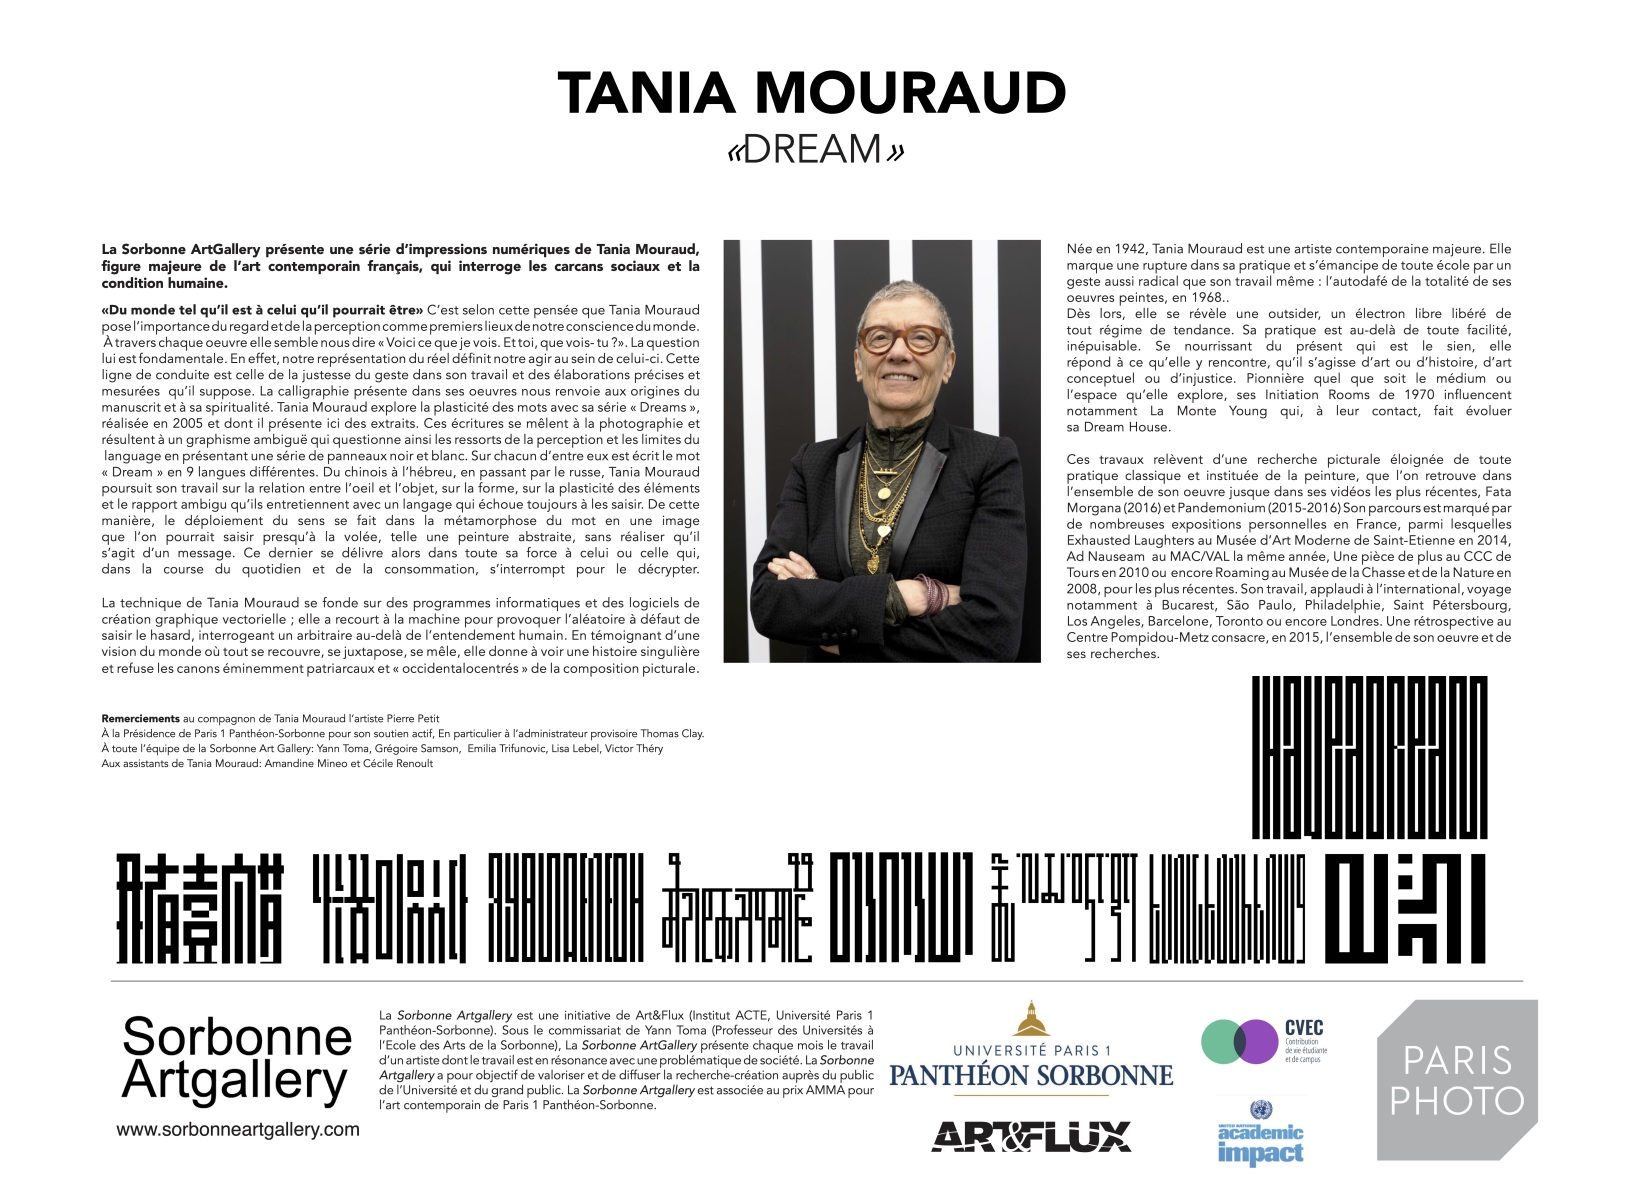 Tania Mouraud Sorbonne Art Gallery